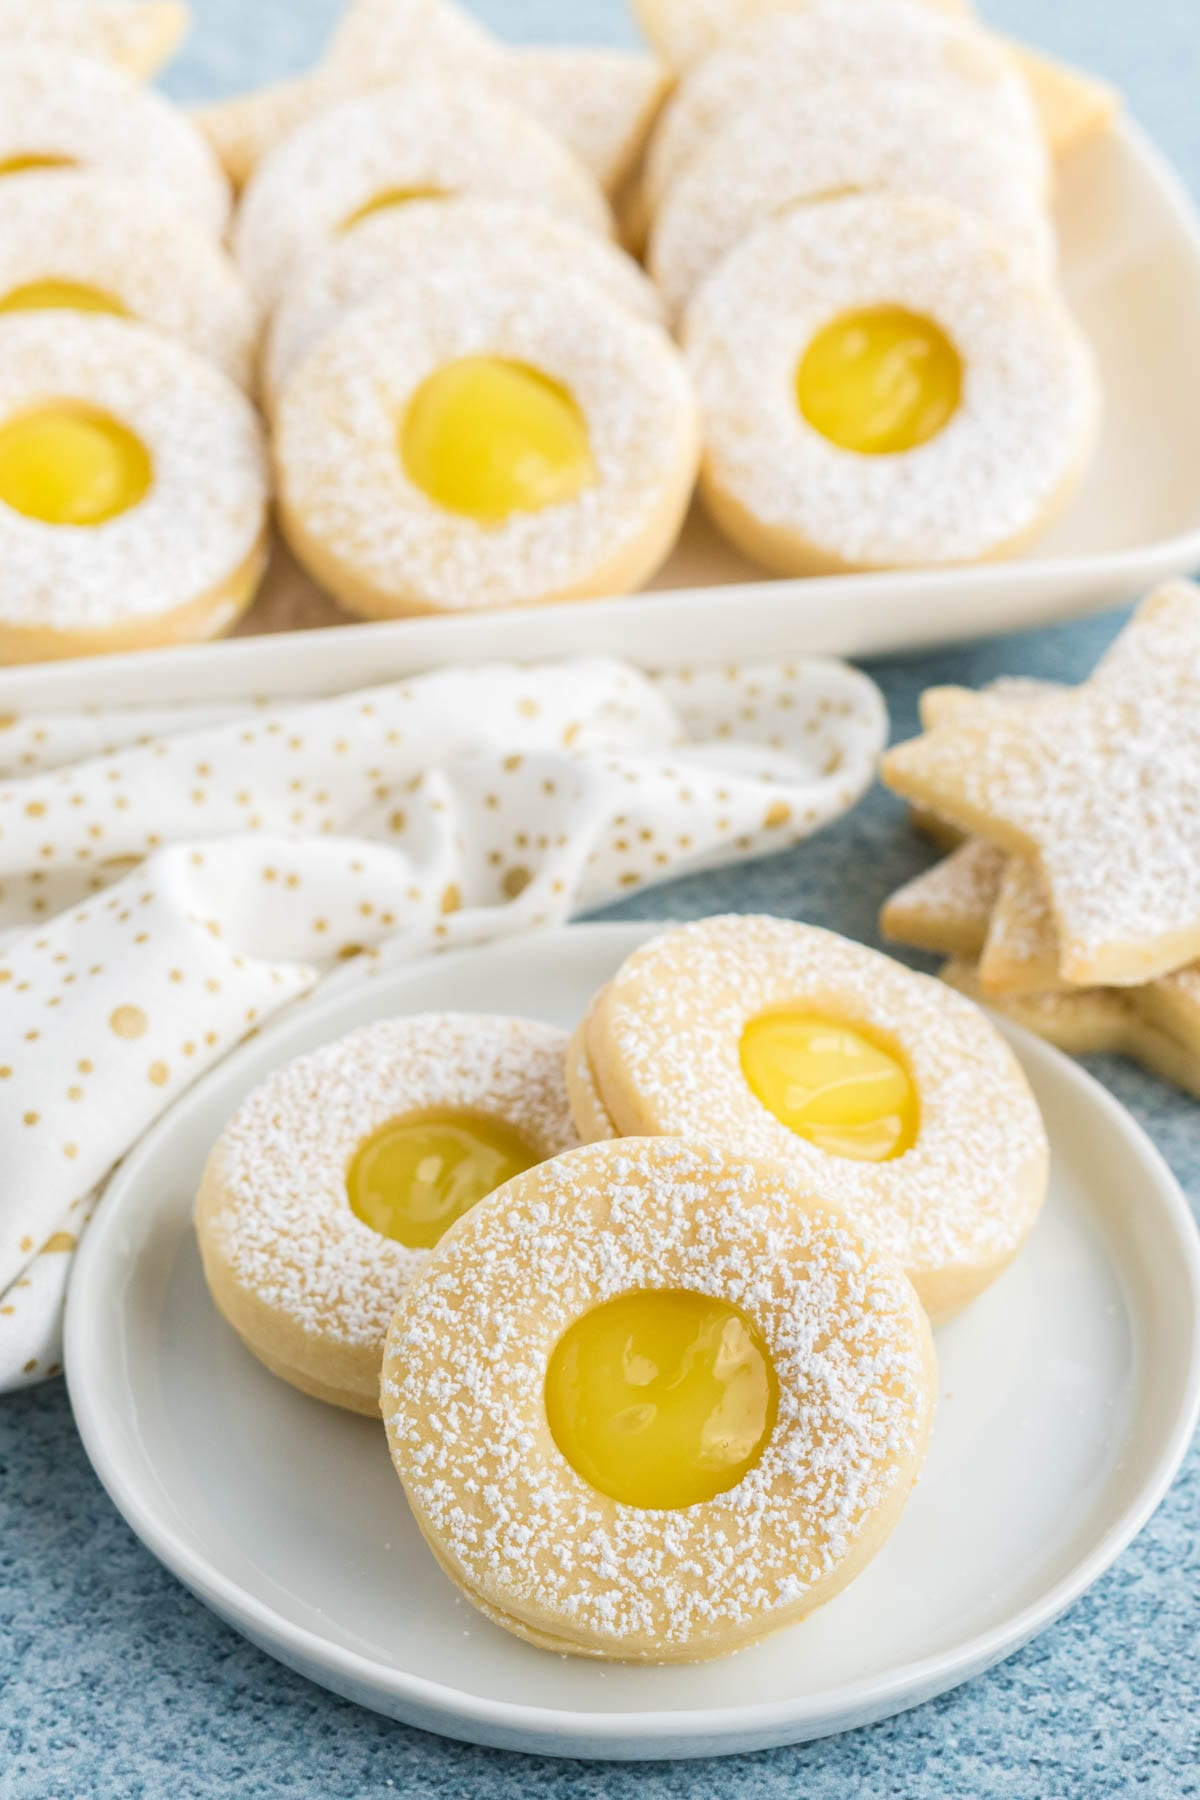 Lemon curd shortbread on a plate with a platter of cookies in the background.